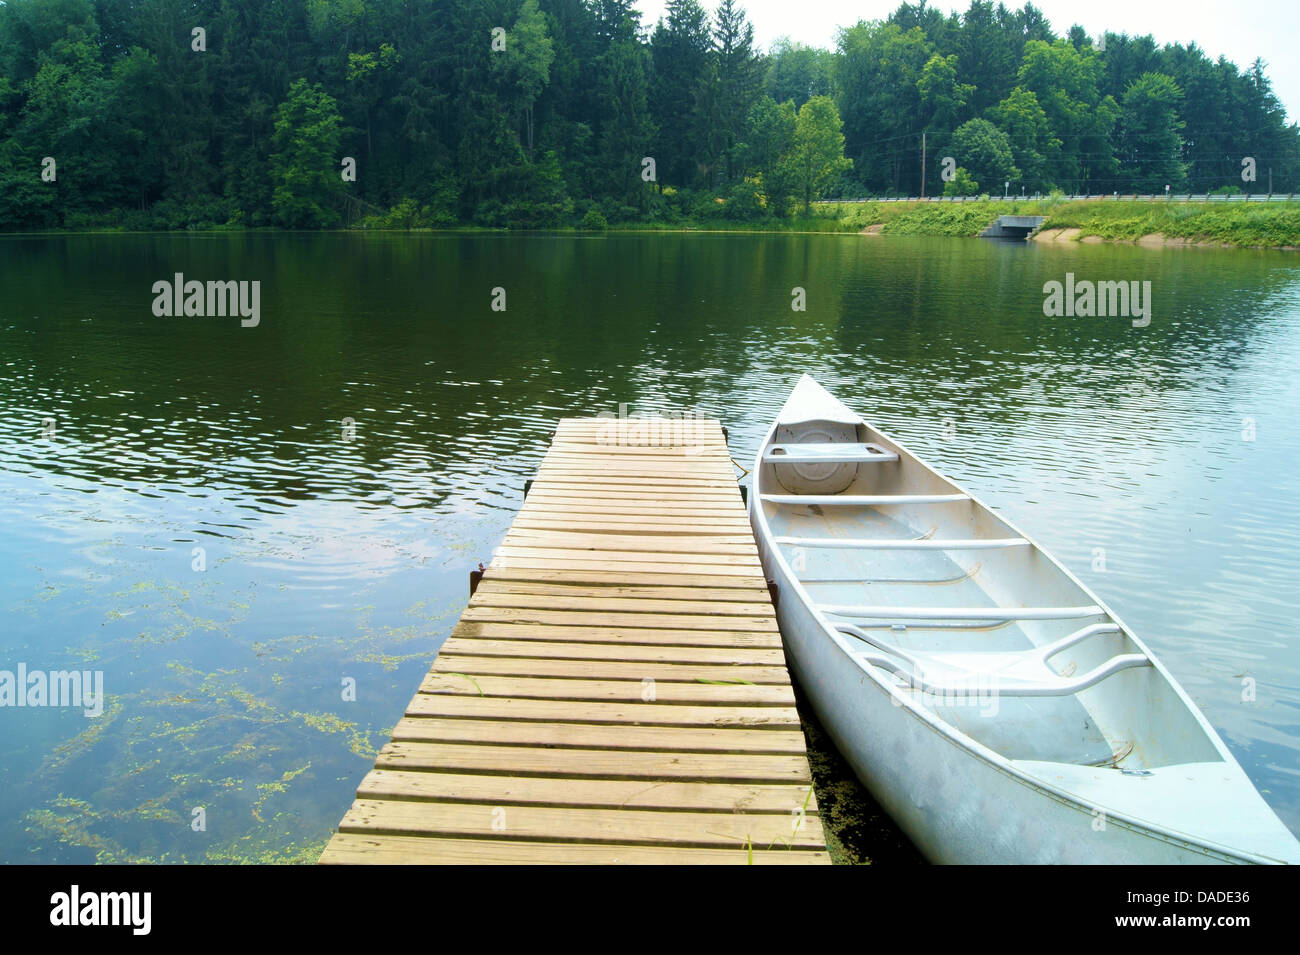 Silver canoe docked at a lake. Picture taken at the Mogadore dam in Akron, Ohio, USA. - Stock Image